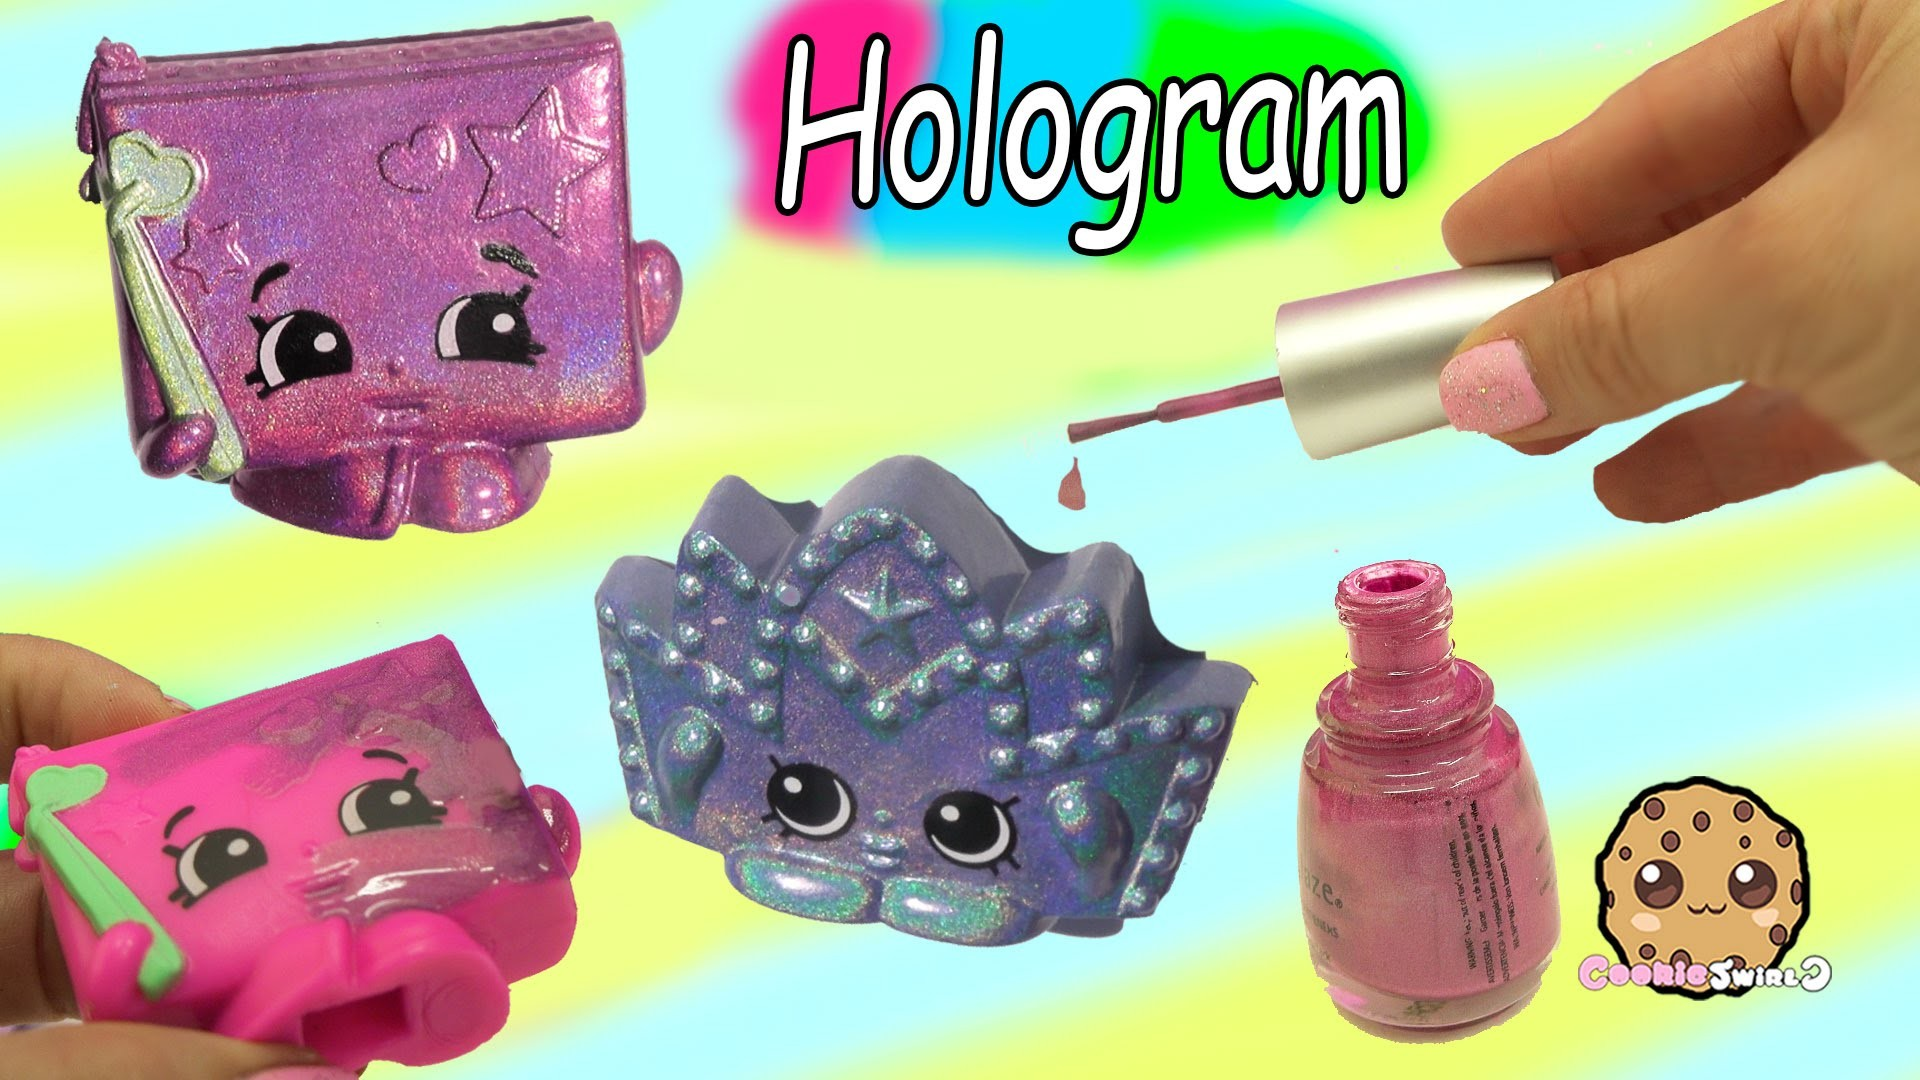 DIY Hologram Nail Polish Shopkins Mcdonalds Happy Meal Toy Do It Yourself Craft Video